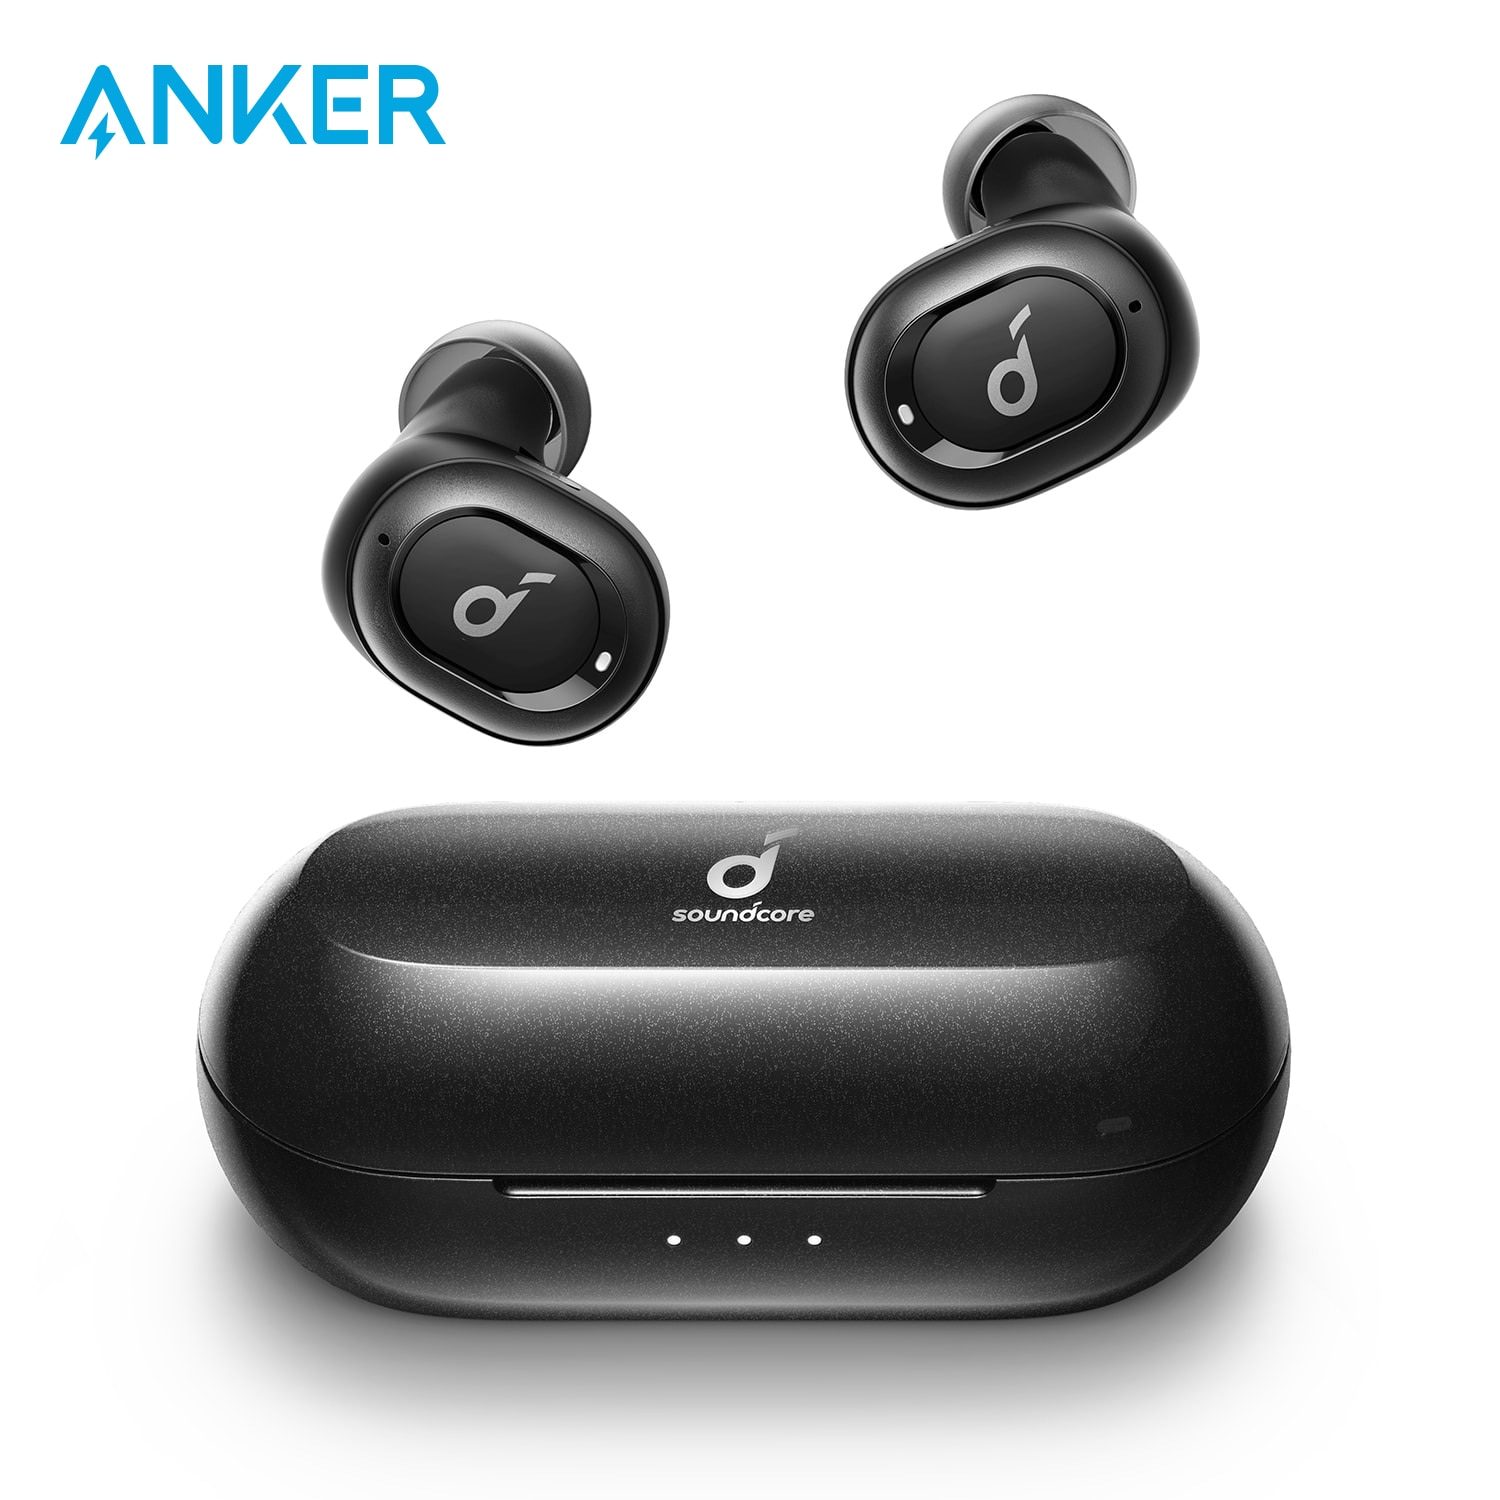 [Upgraded] Anker Soundcore Liberty Neo TWS True wireless earbuds With Bluetooth 5.0, Sports Sweatproof, and Noise Isolation